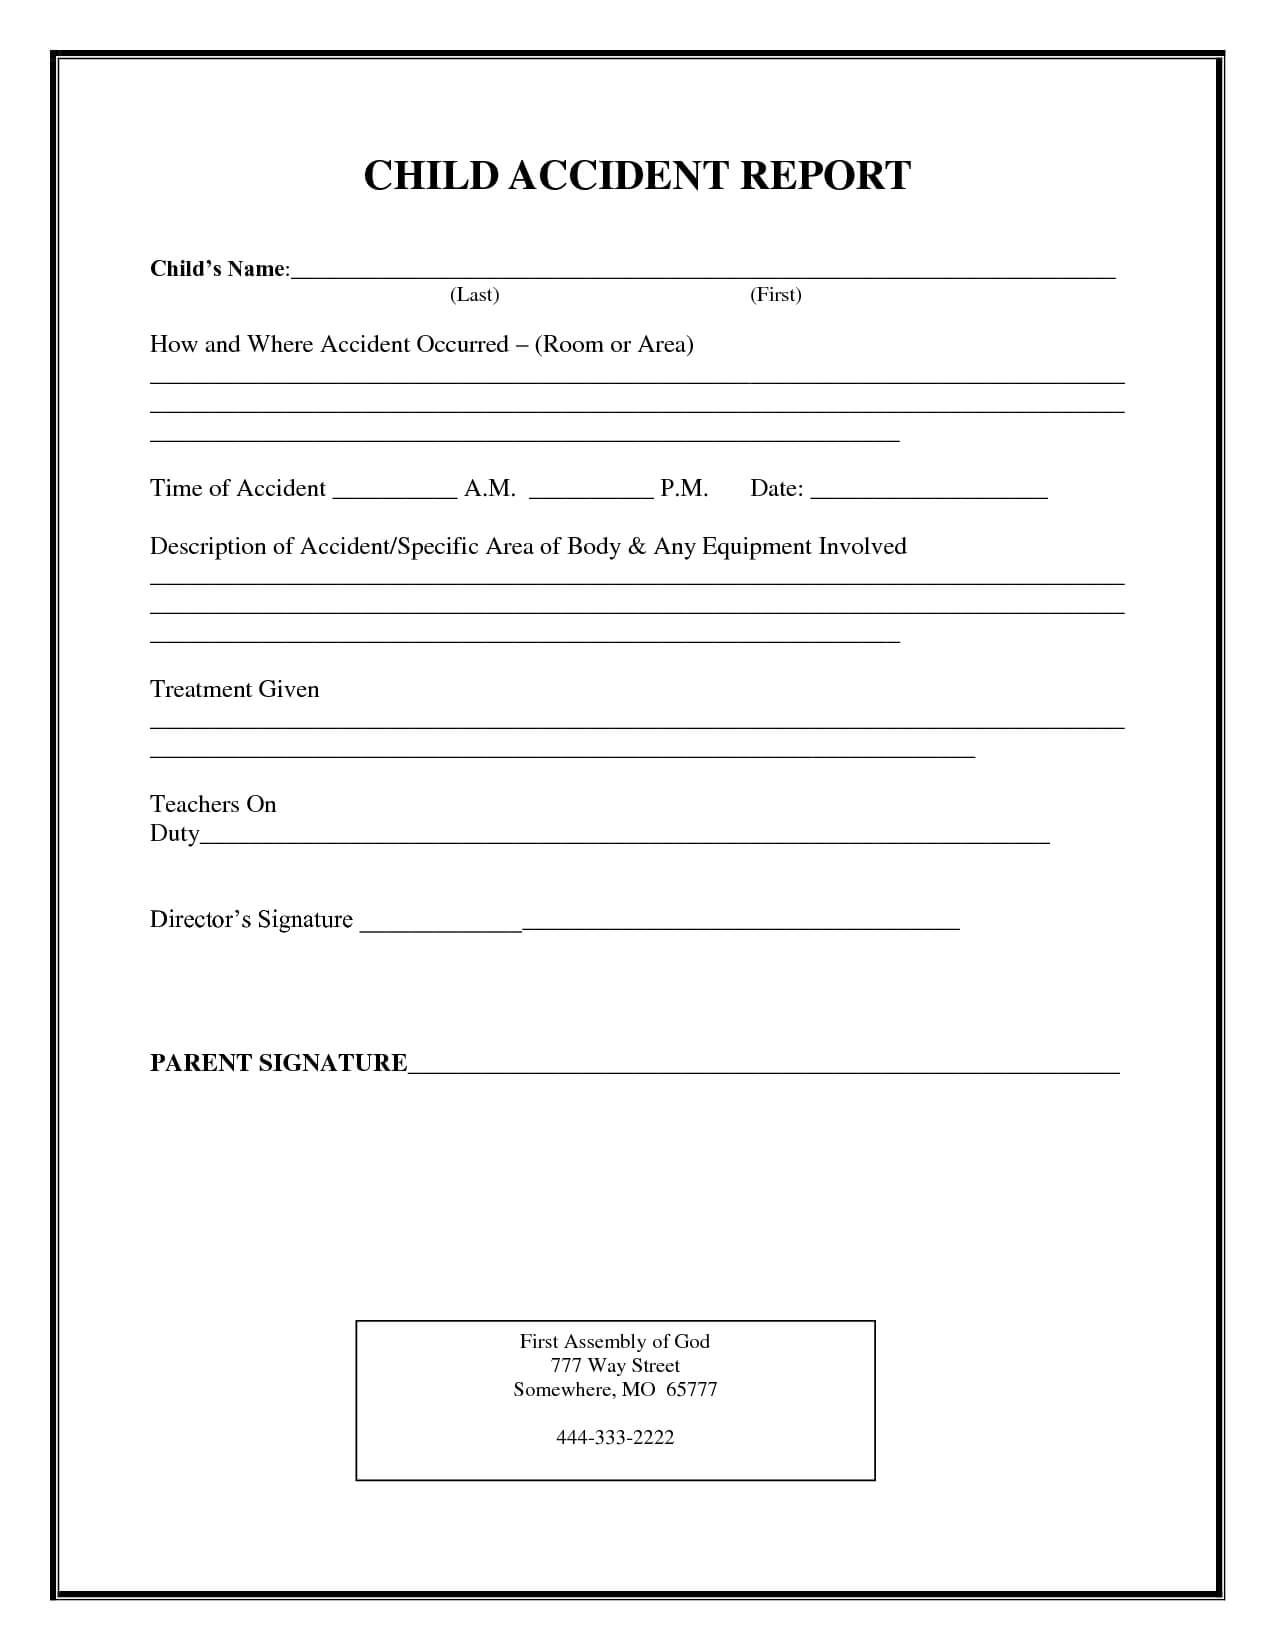 Incident Report Form Child Care | Child Accident Report Within Incident Report Book Template